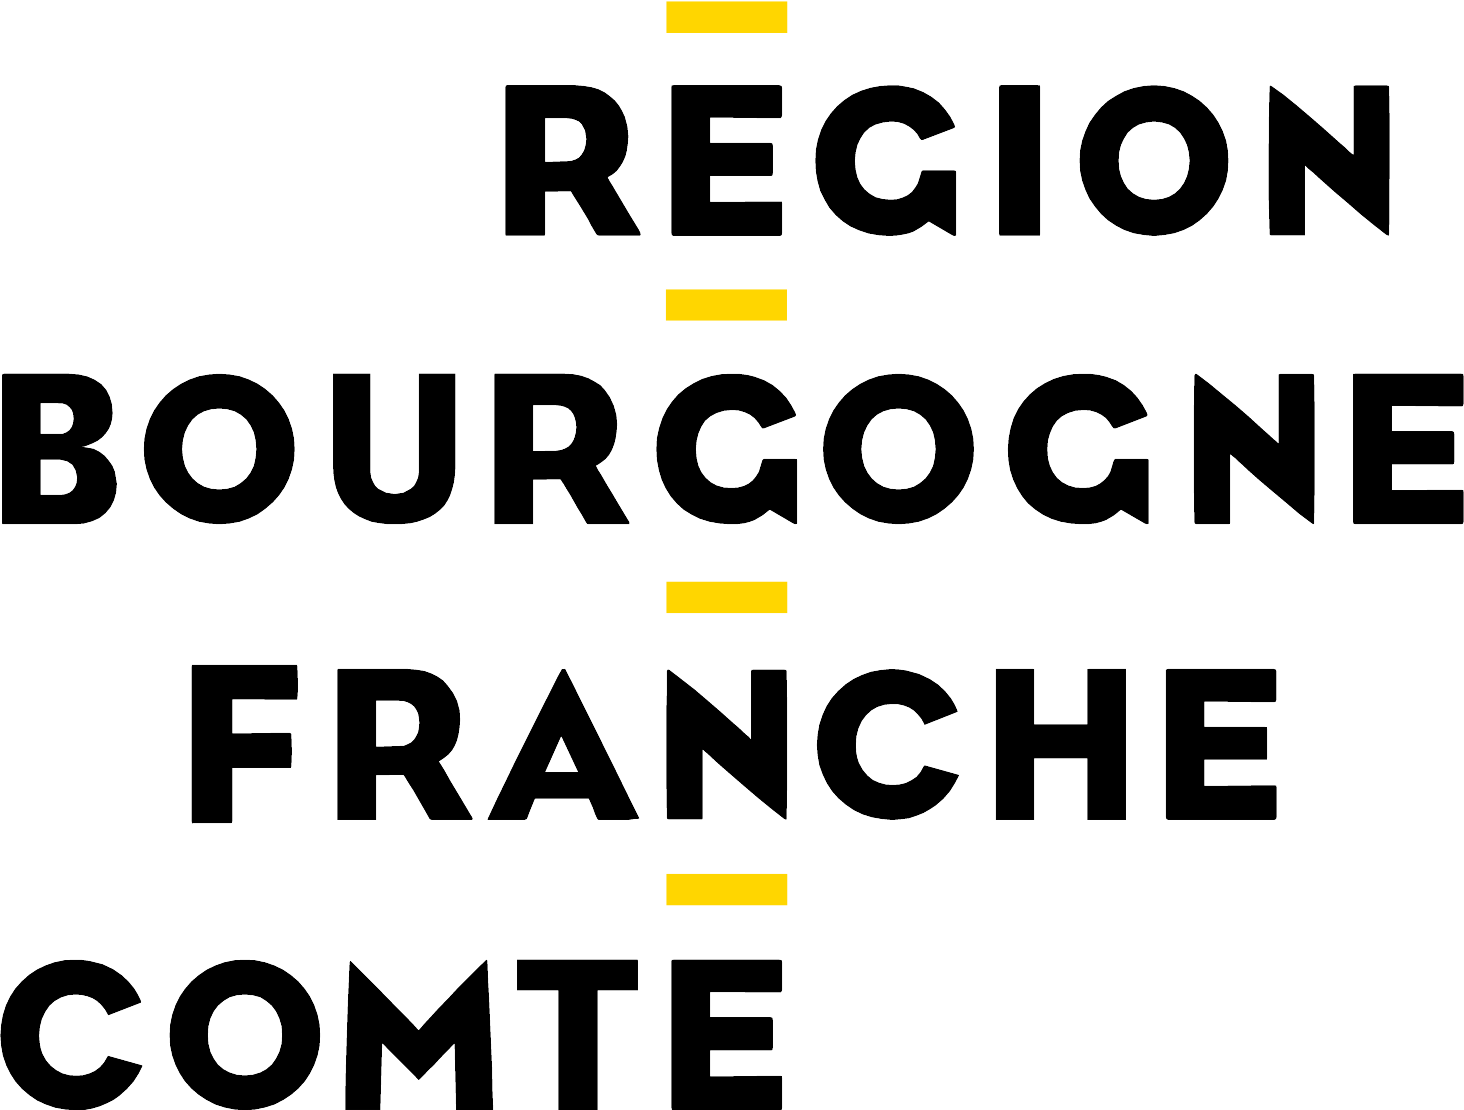 https://upload.wikimedia.org/wikipedia/commons/3/32/Logo_Bourgogne-Franche-Comt%C3%A9_2016-11.png